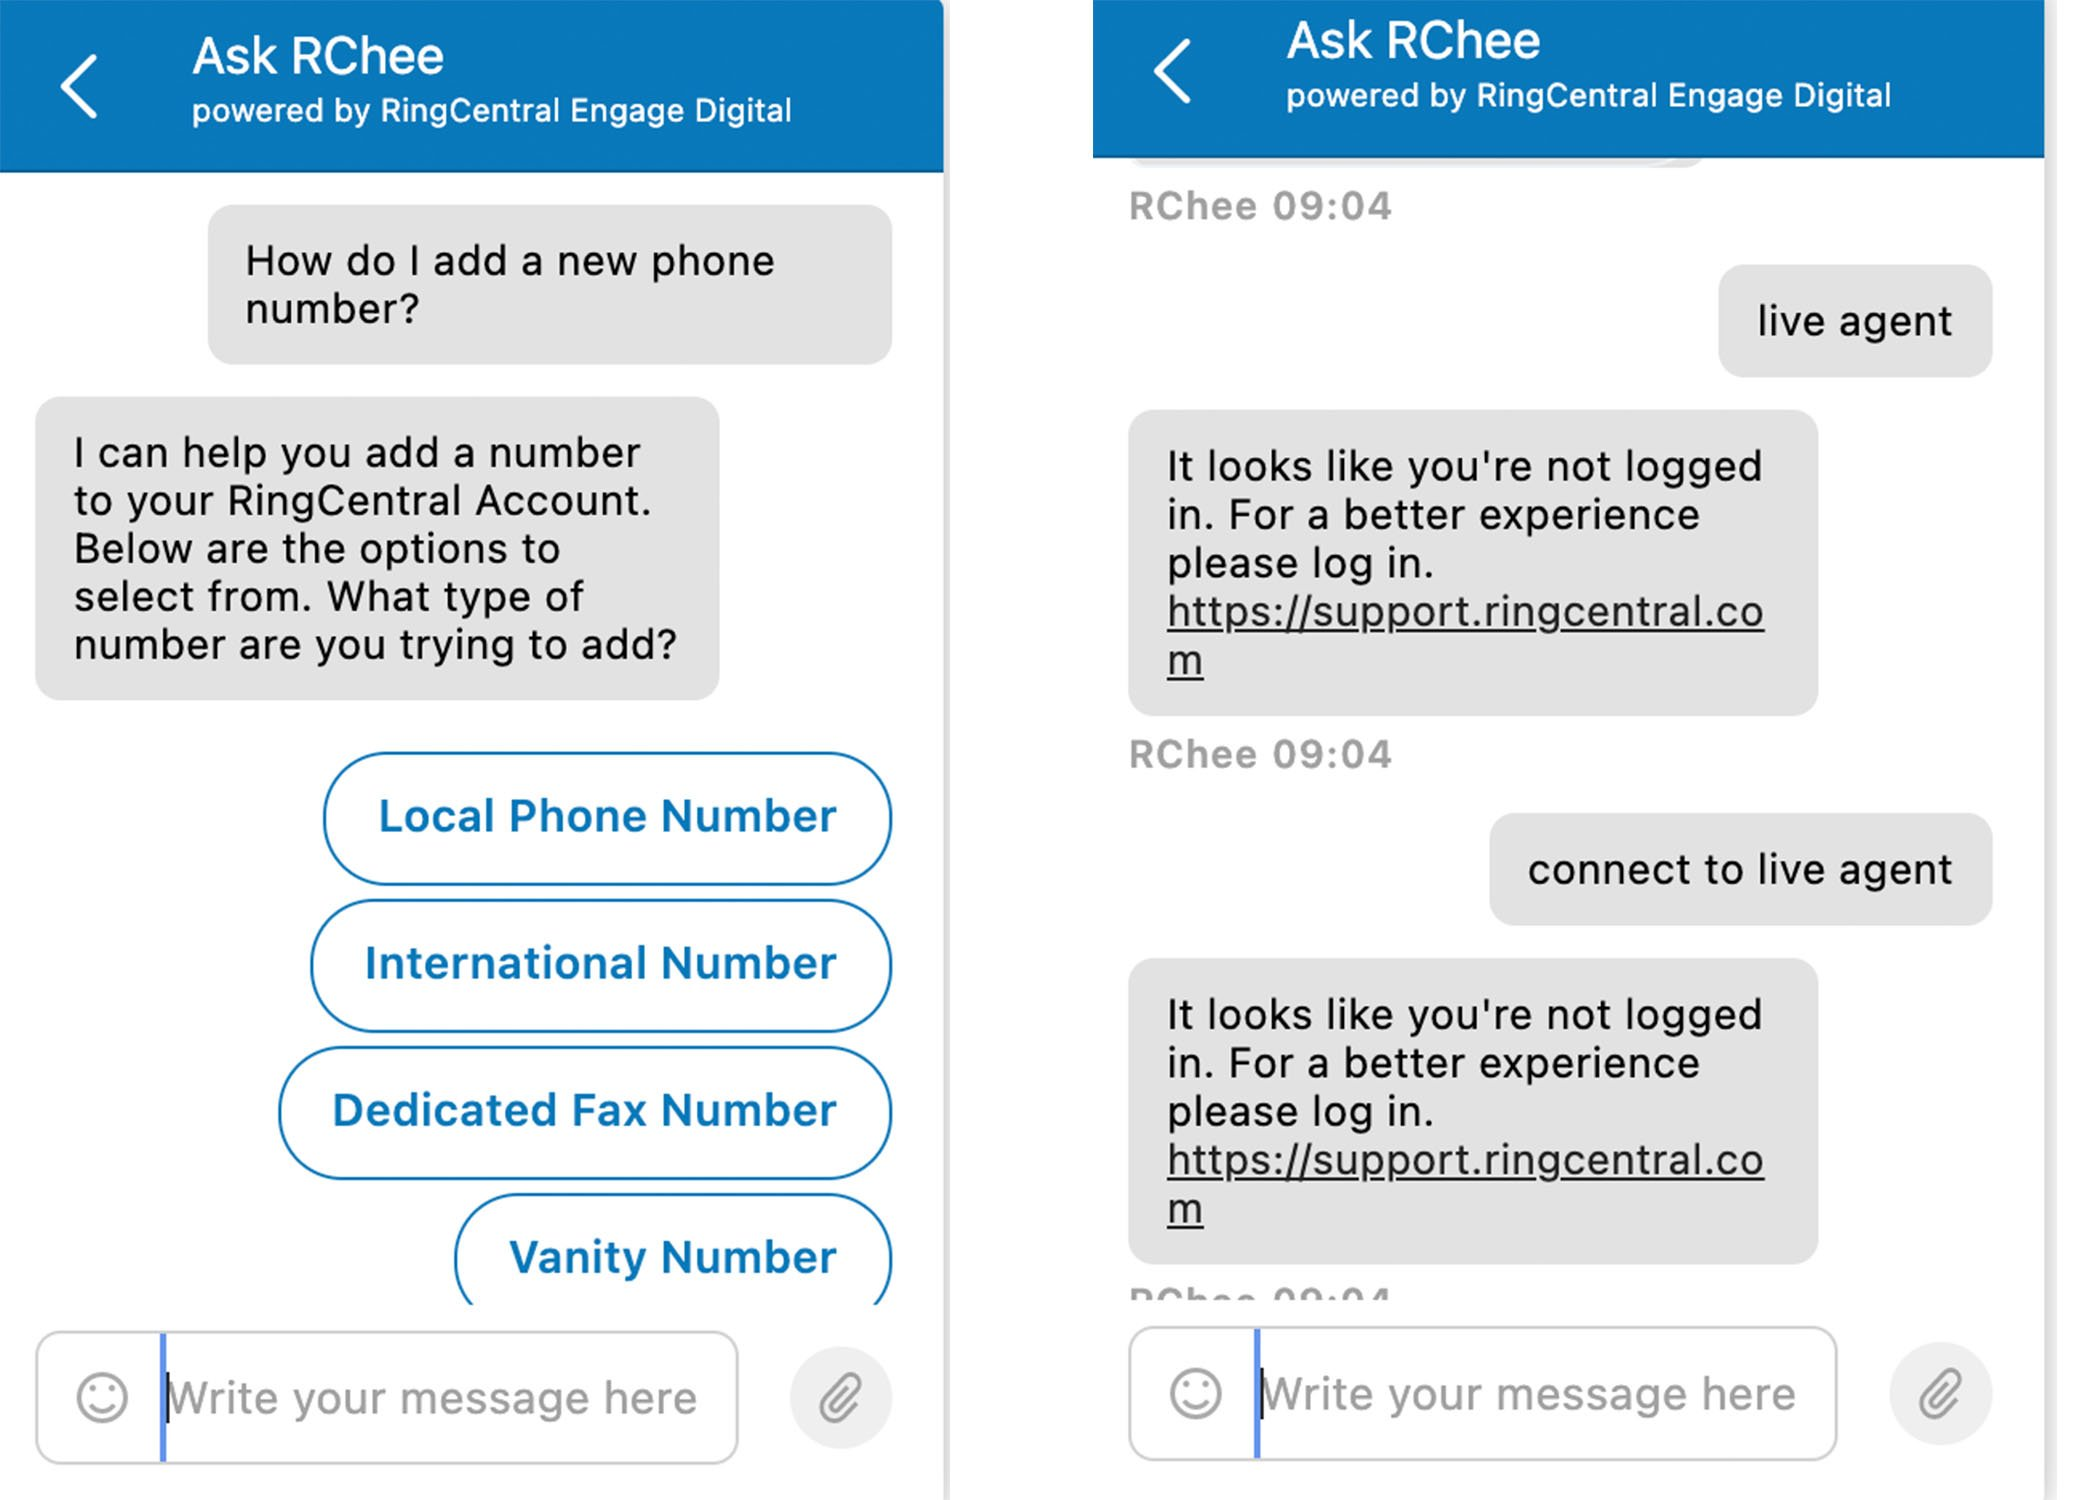 RingCentral Support